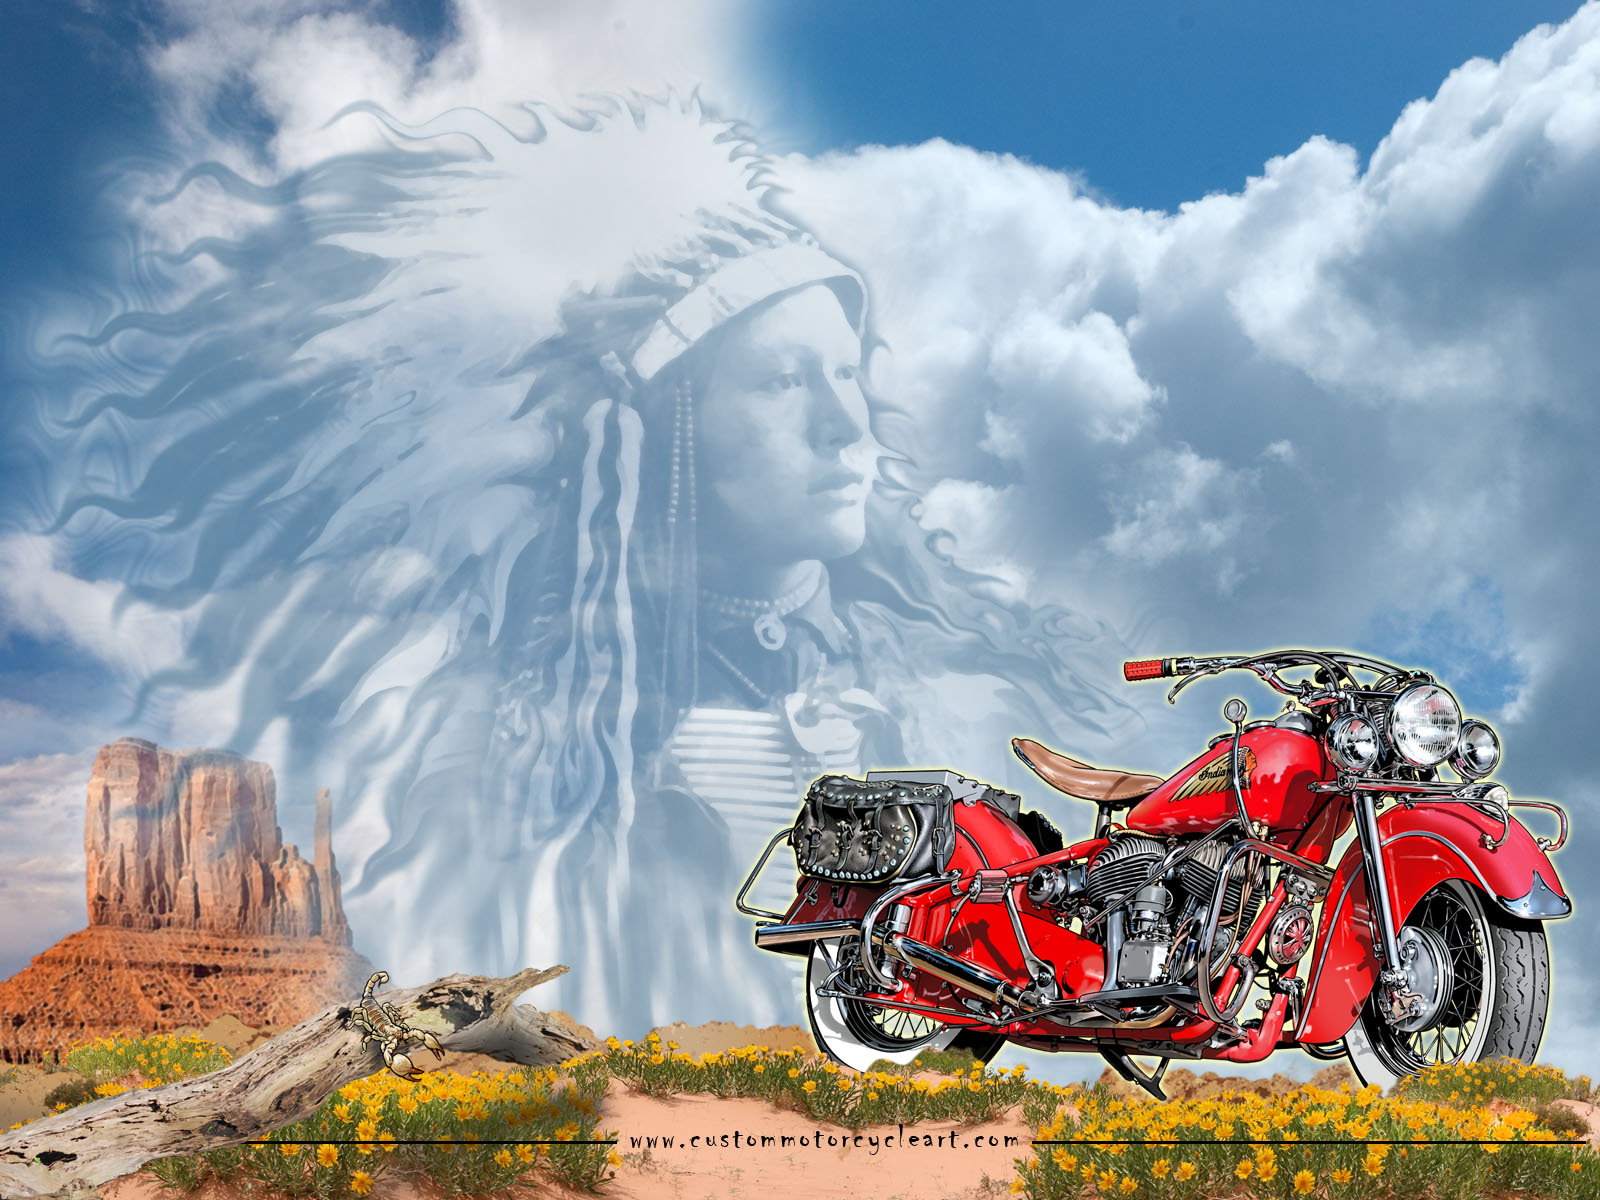 Wallpaper X Harley Davidson Norton Triumph Ariel Classic Vintage Motorcycle Art Prints Indian besides Cf A A C C D B A Dcce as well Honda Cl K Scrambler Motorcycle Parts Manual Page in addition E F A D Ffff Ffffe likewise Wire Diagram. on indian motorcycle wiring diagram